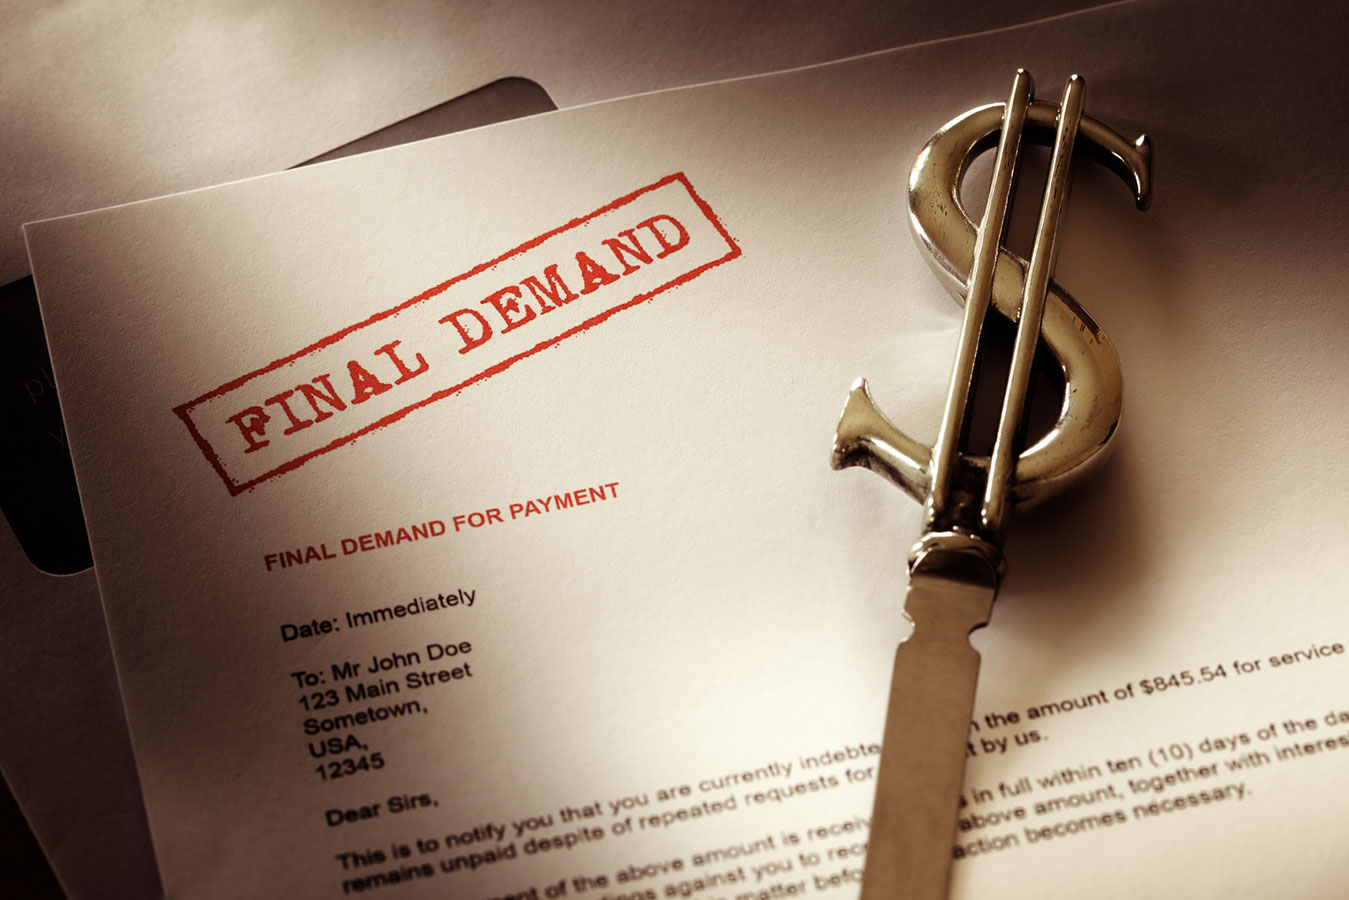 What are my legal options if I receive a collection letter?